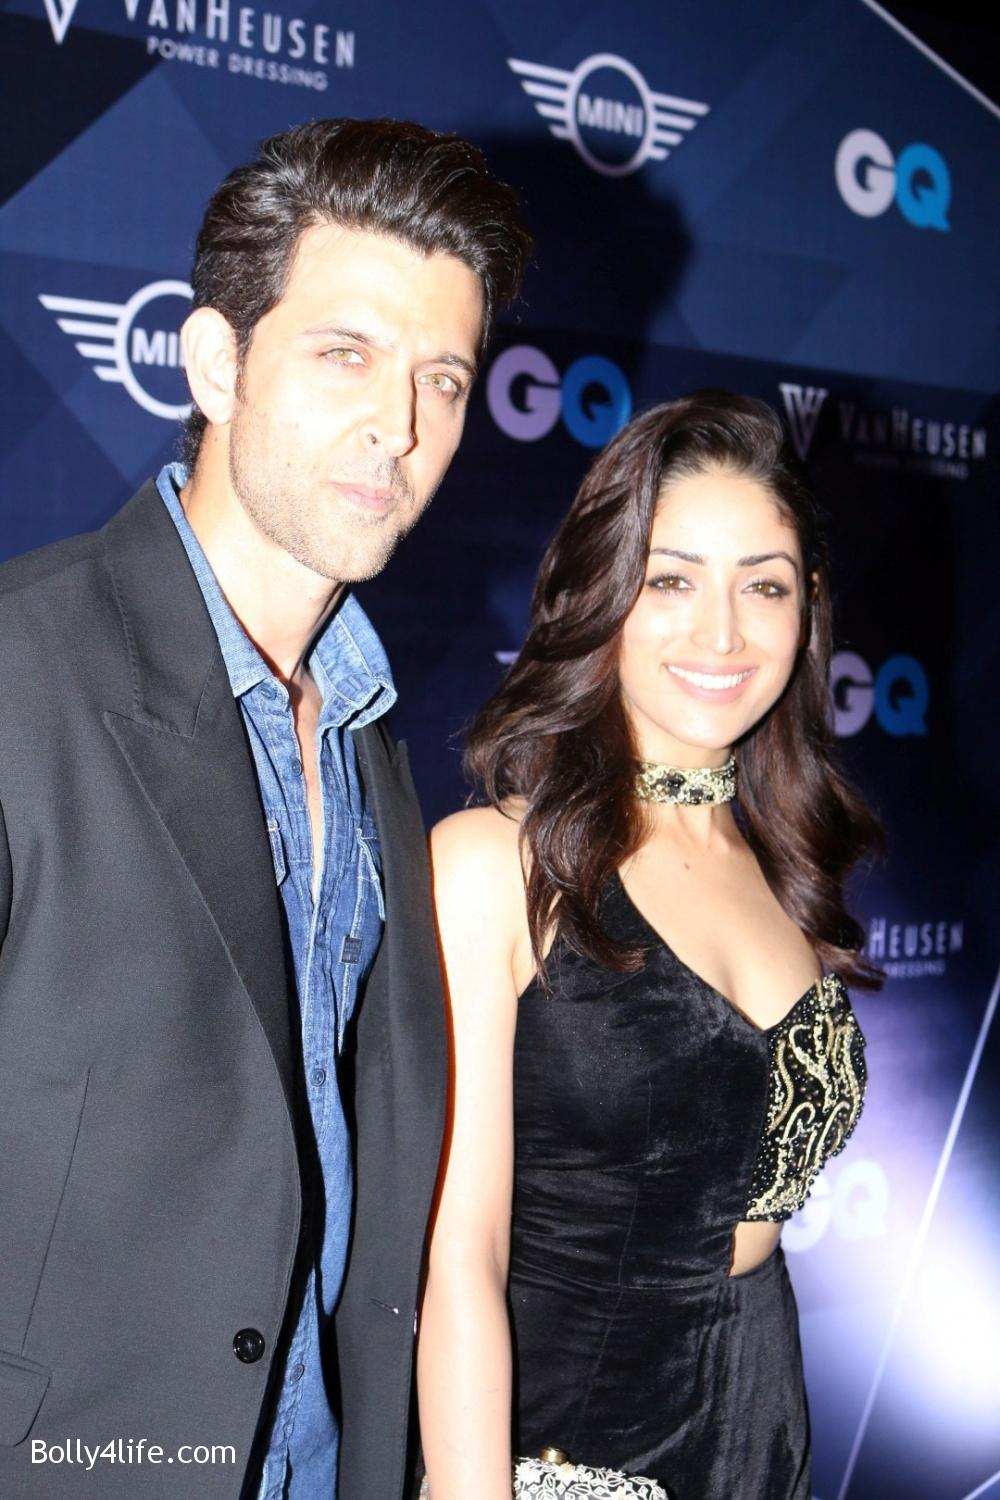 Hrithik-Roshan-and-Yami-Gautam-during-the-Van-Heusen-GQ-Fashion-Nights-in-Mumbai.jpg